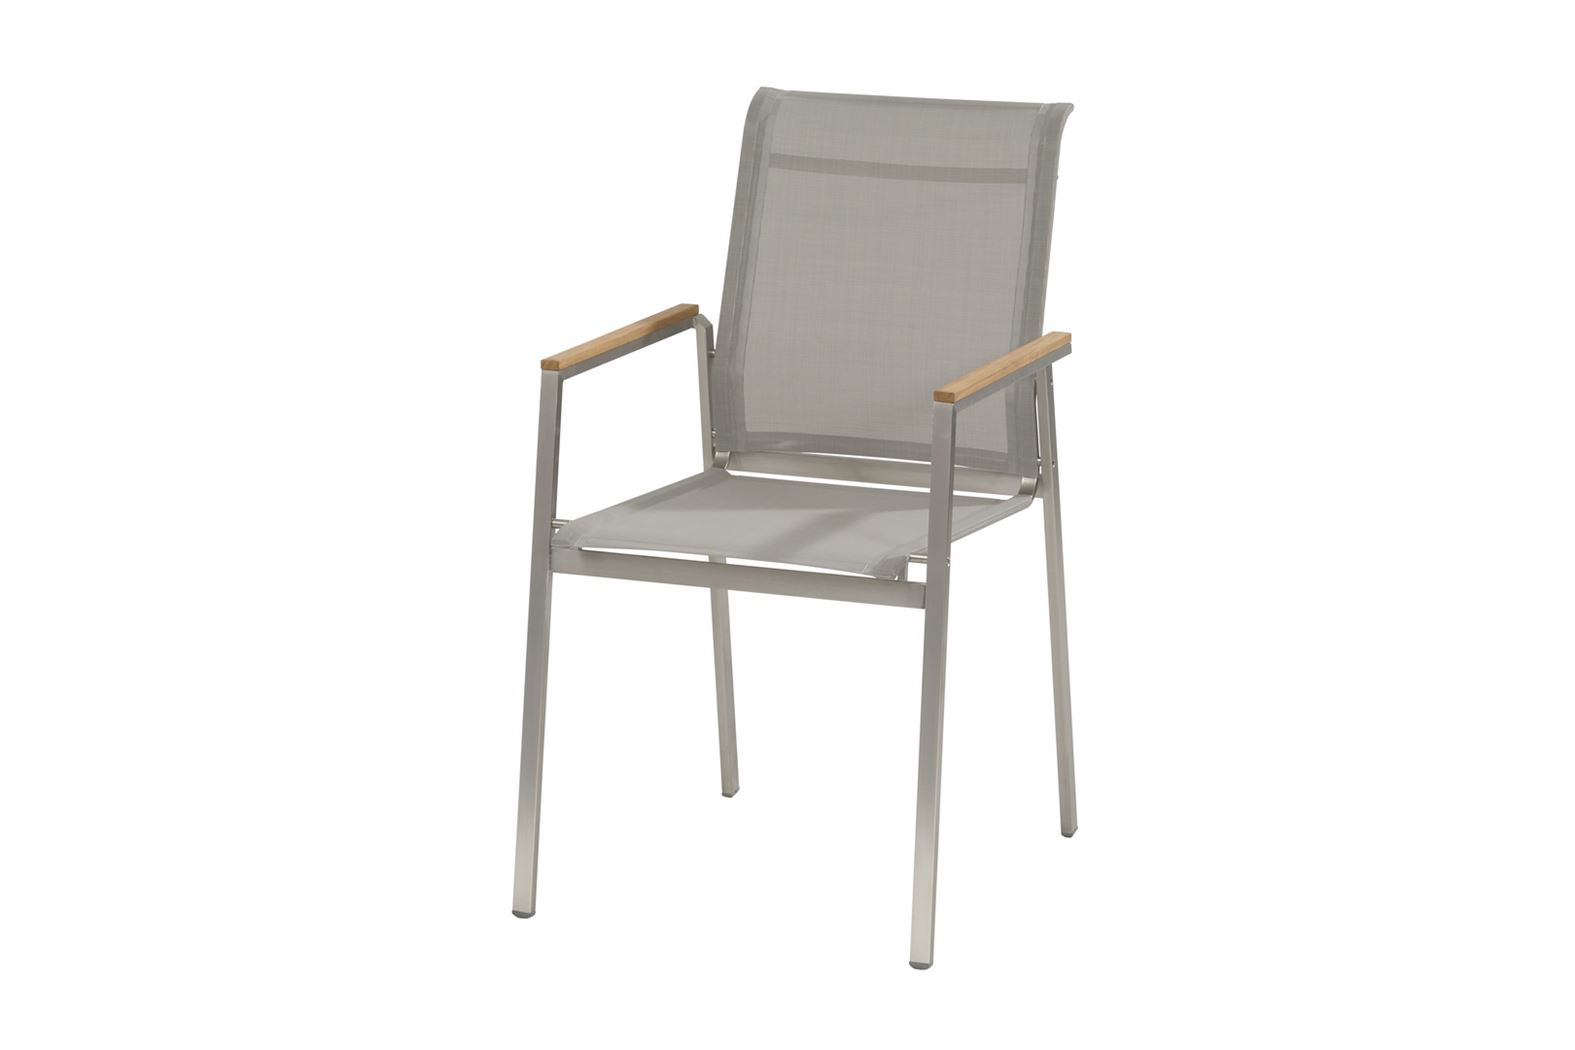 4so passion stacking chair stainless steel grey light grey